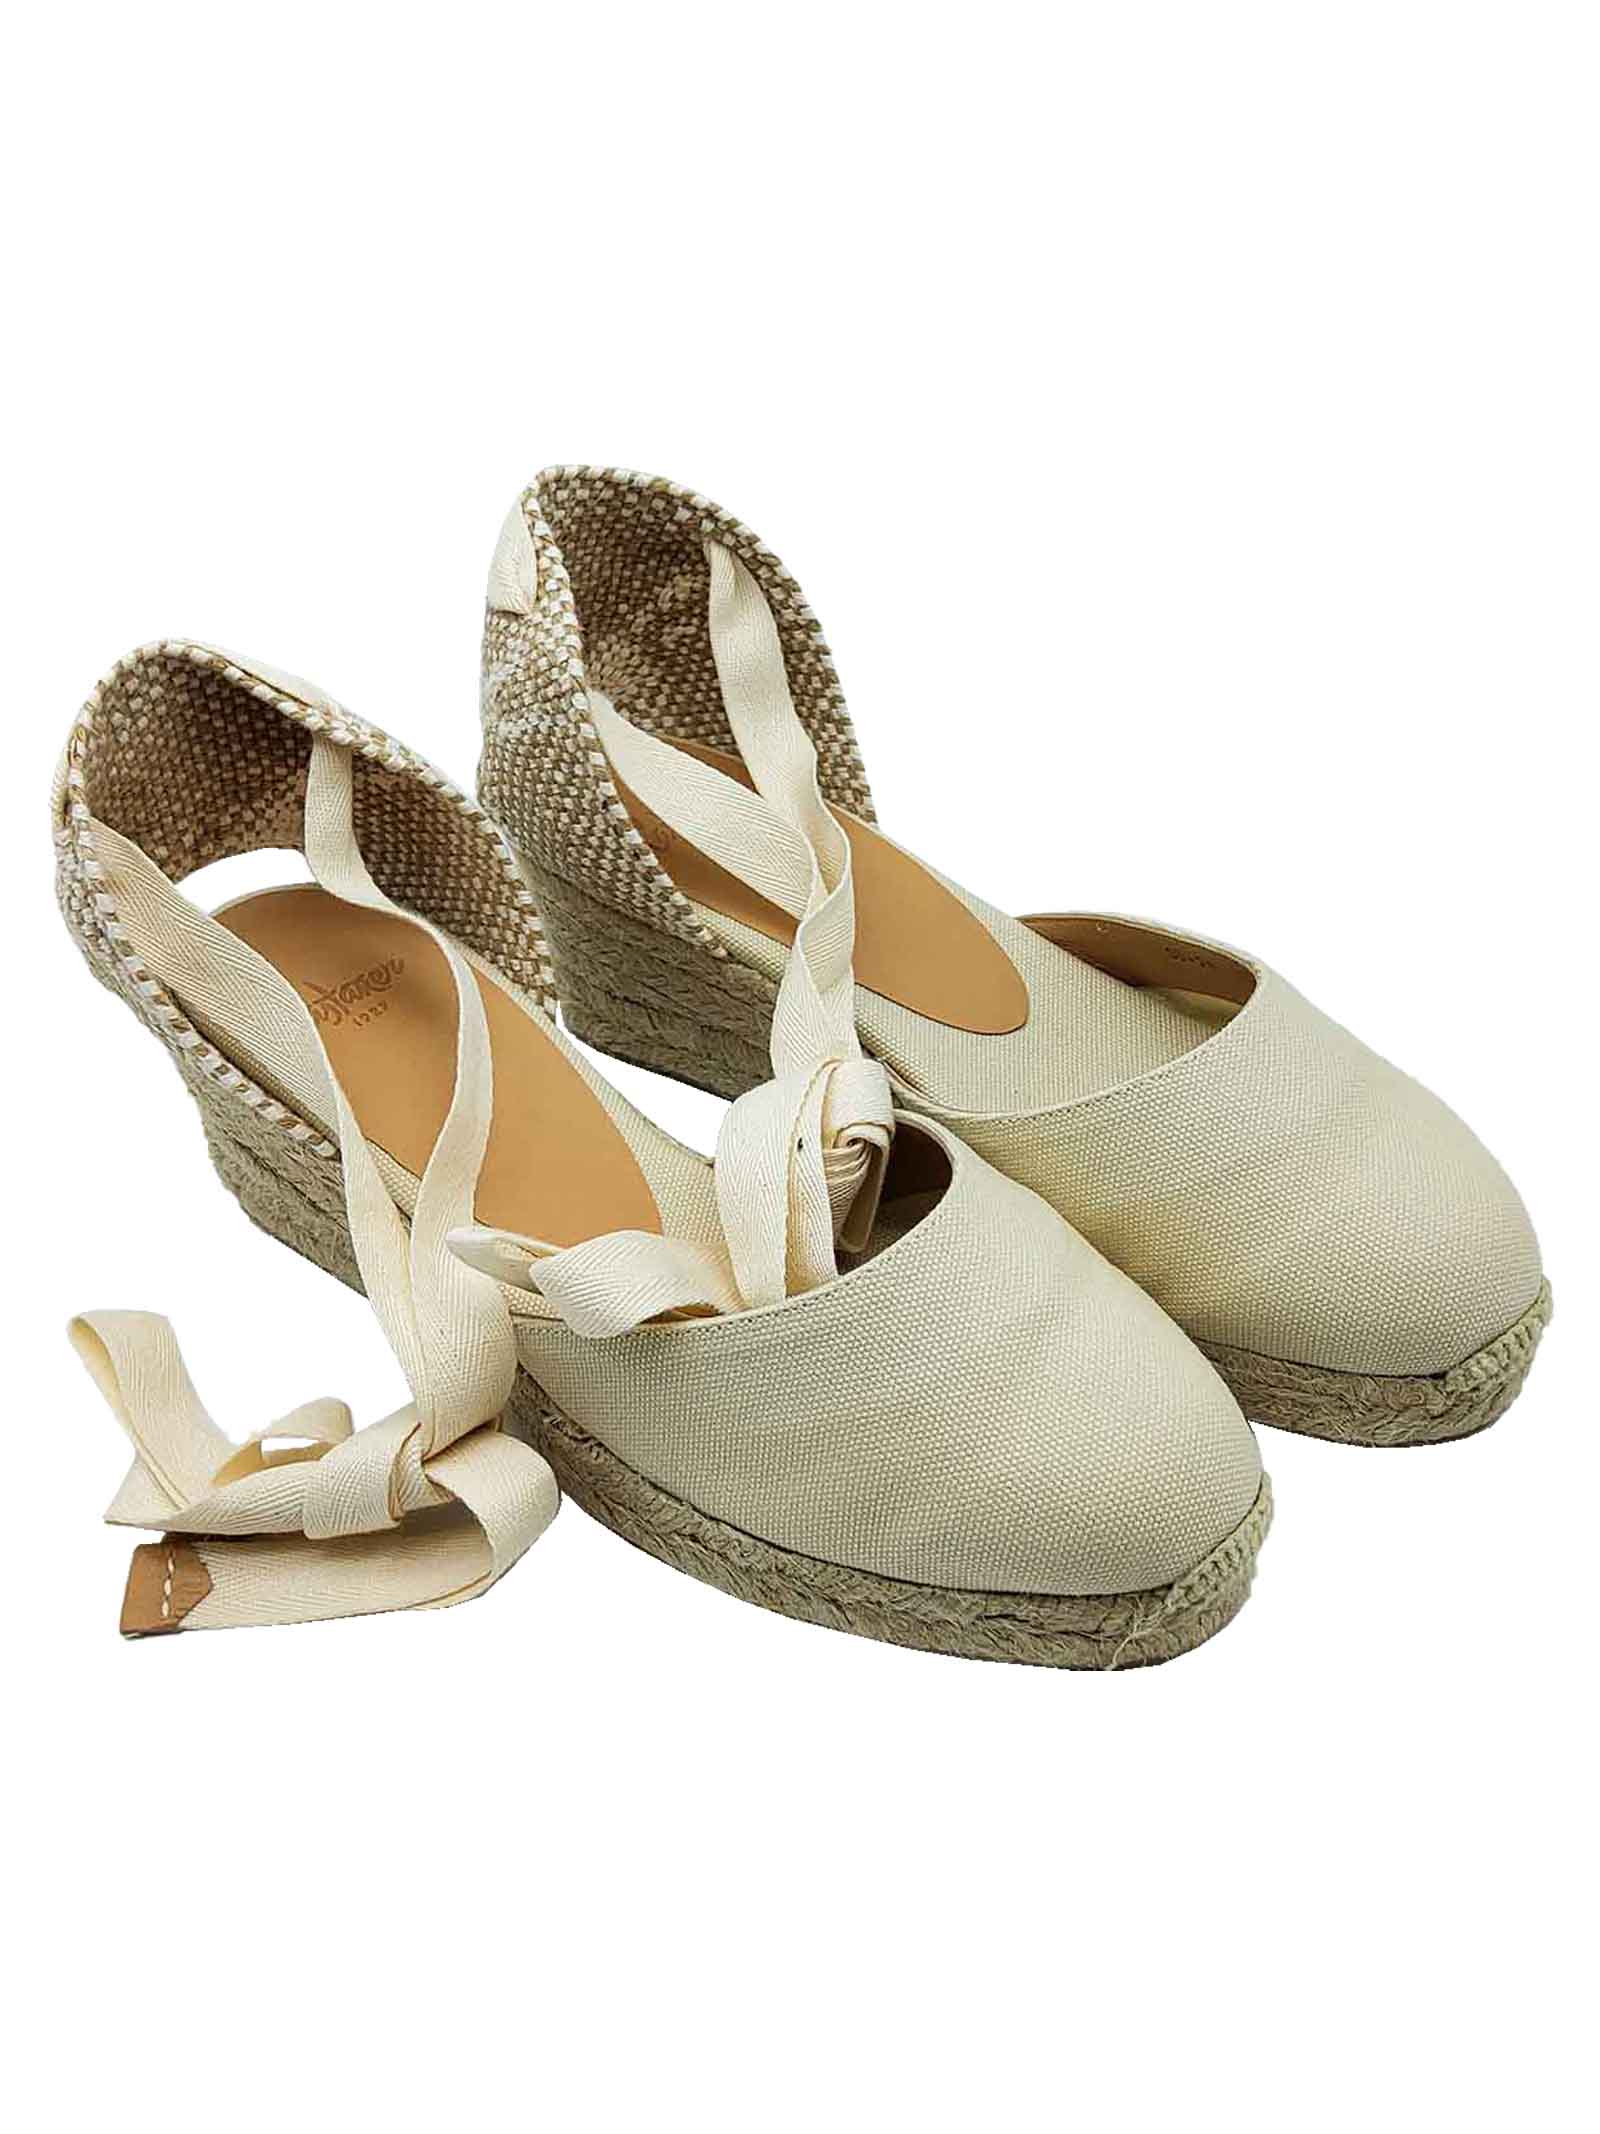 Women's Shoes Beige Canvas Espadrilles Sandals with Closed Toe Ankle Laces and Low Rope Wedge Castaner | Wedge Sandals | CARINA016